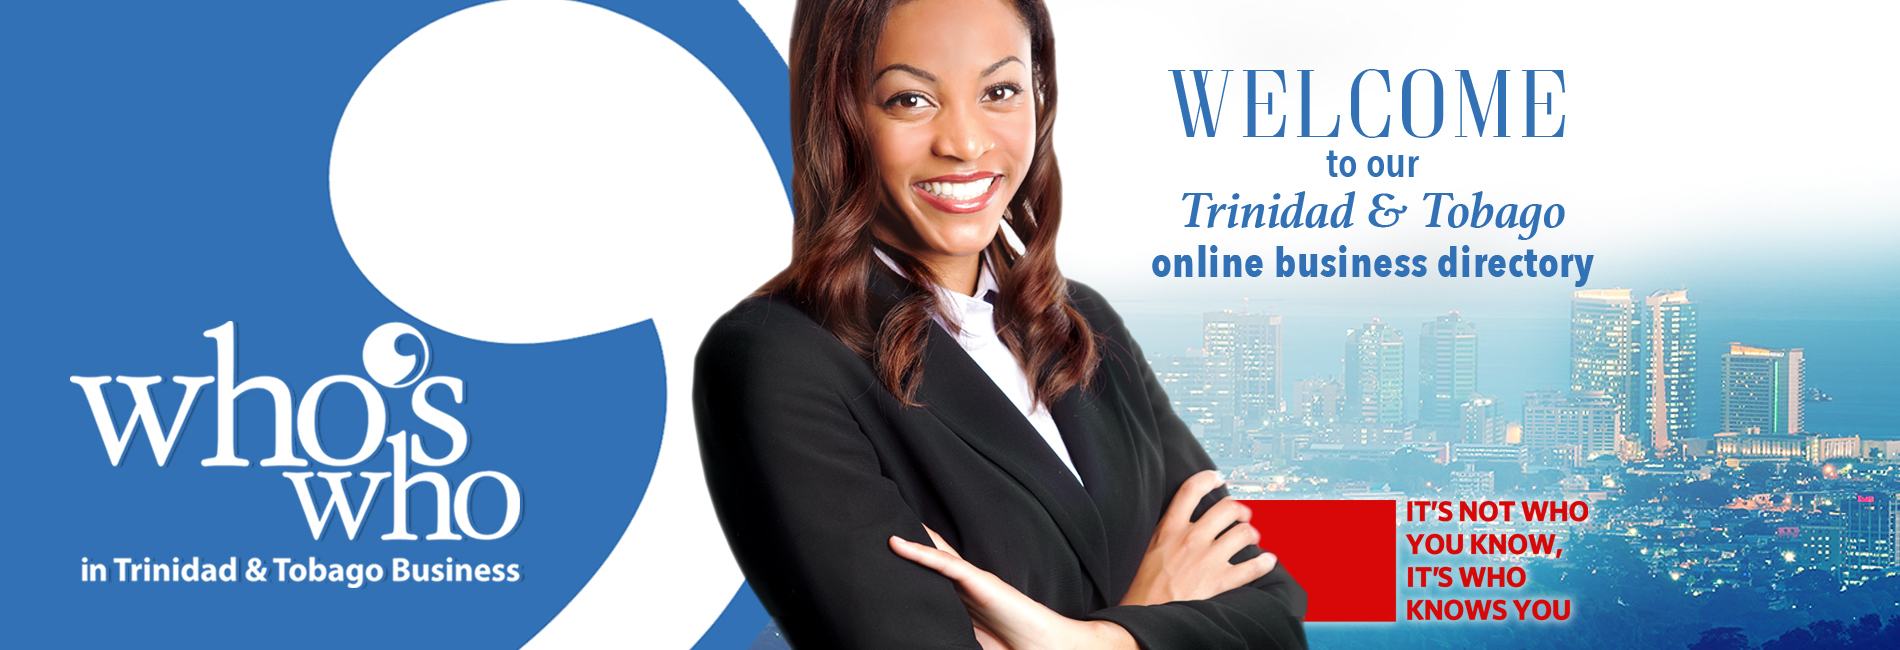 Trinidad And Tobago Online Business Directory